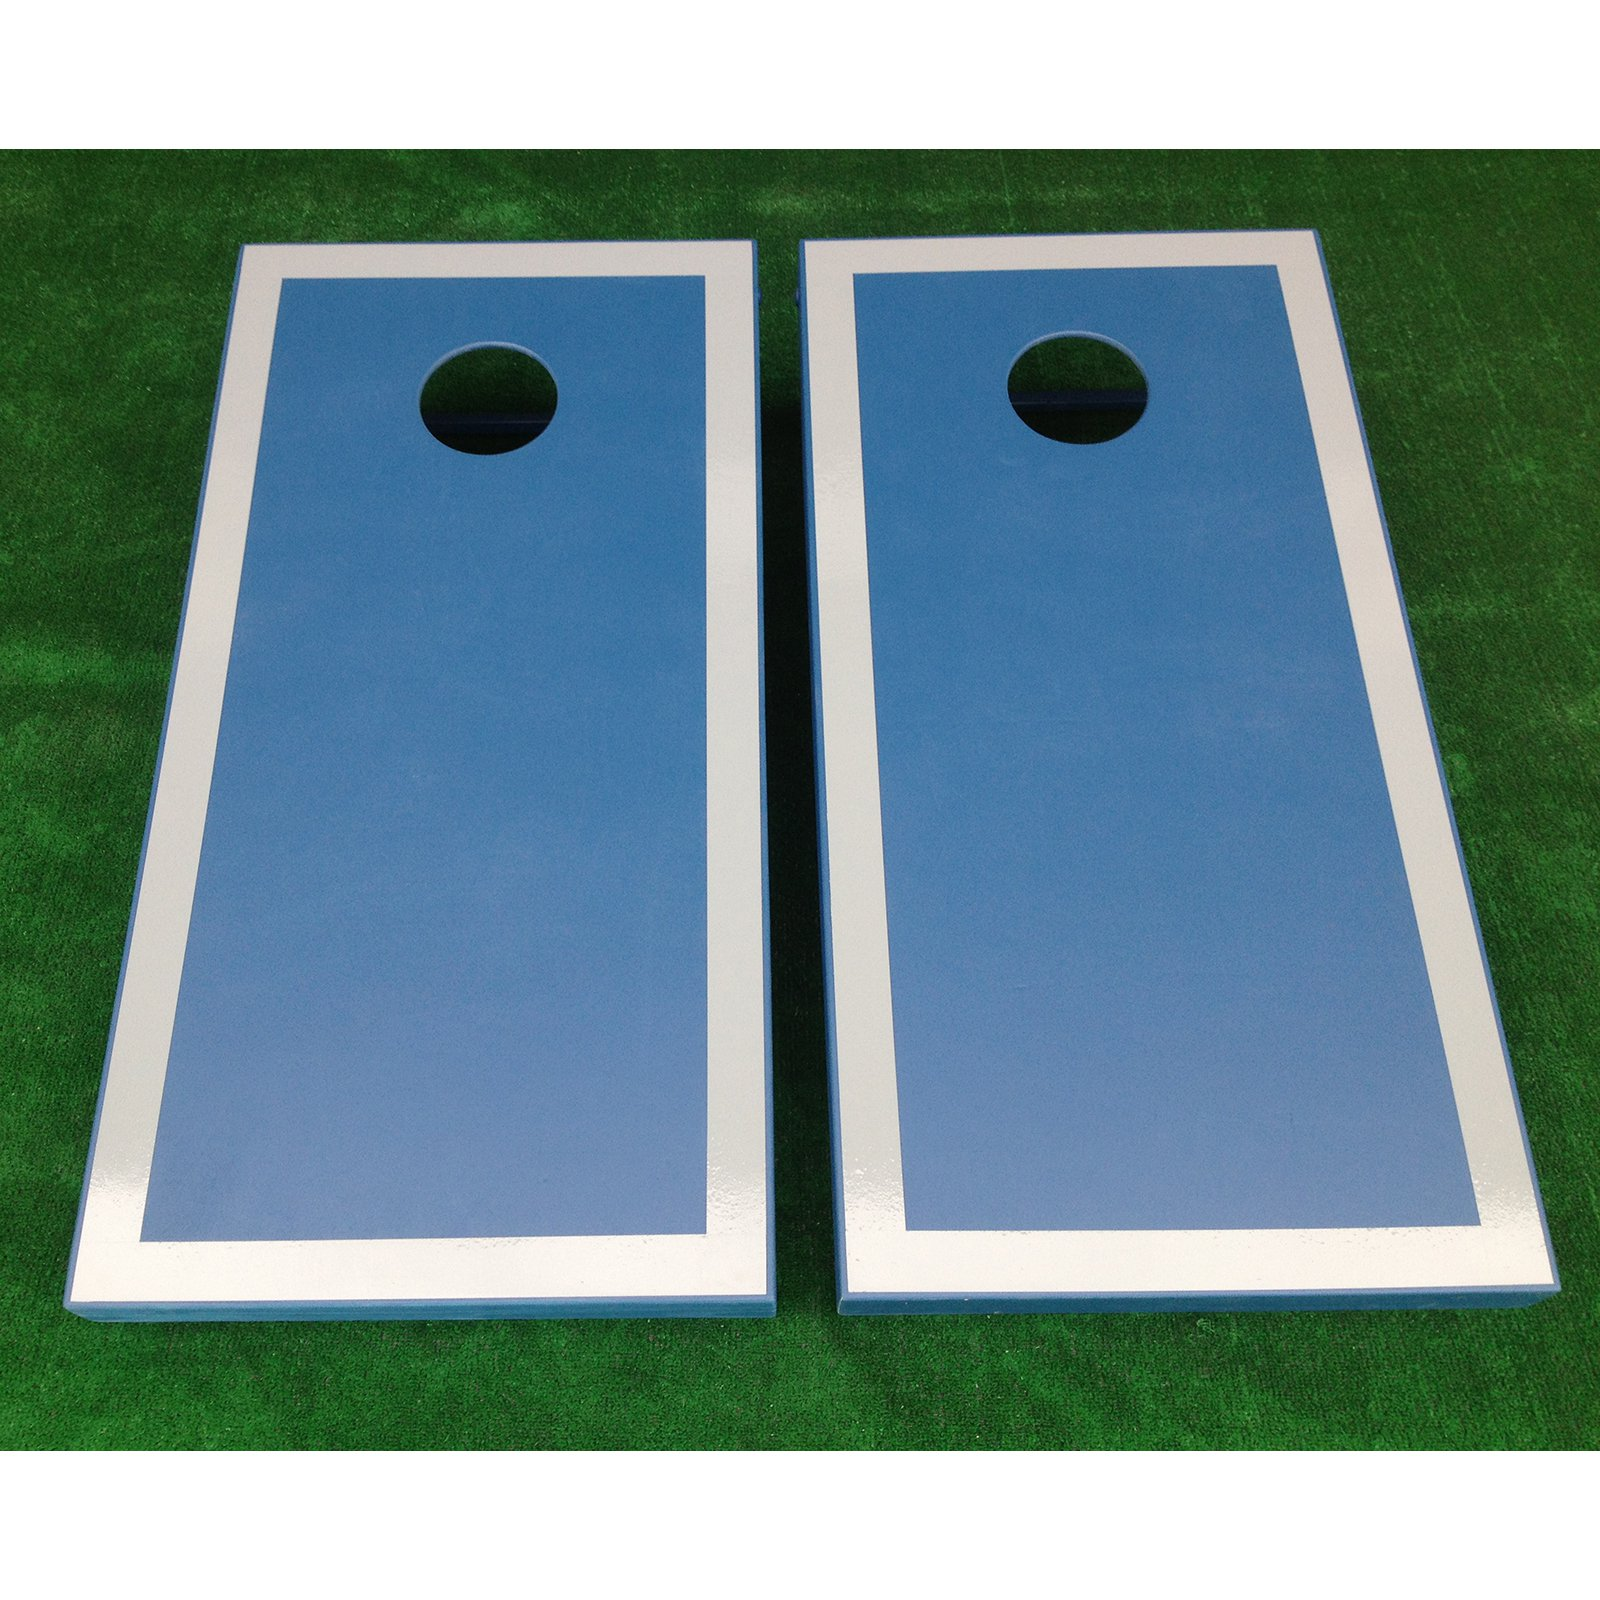 Exclusive! Bordered Tournament Cornhole Set